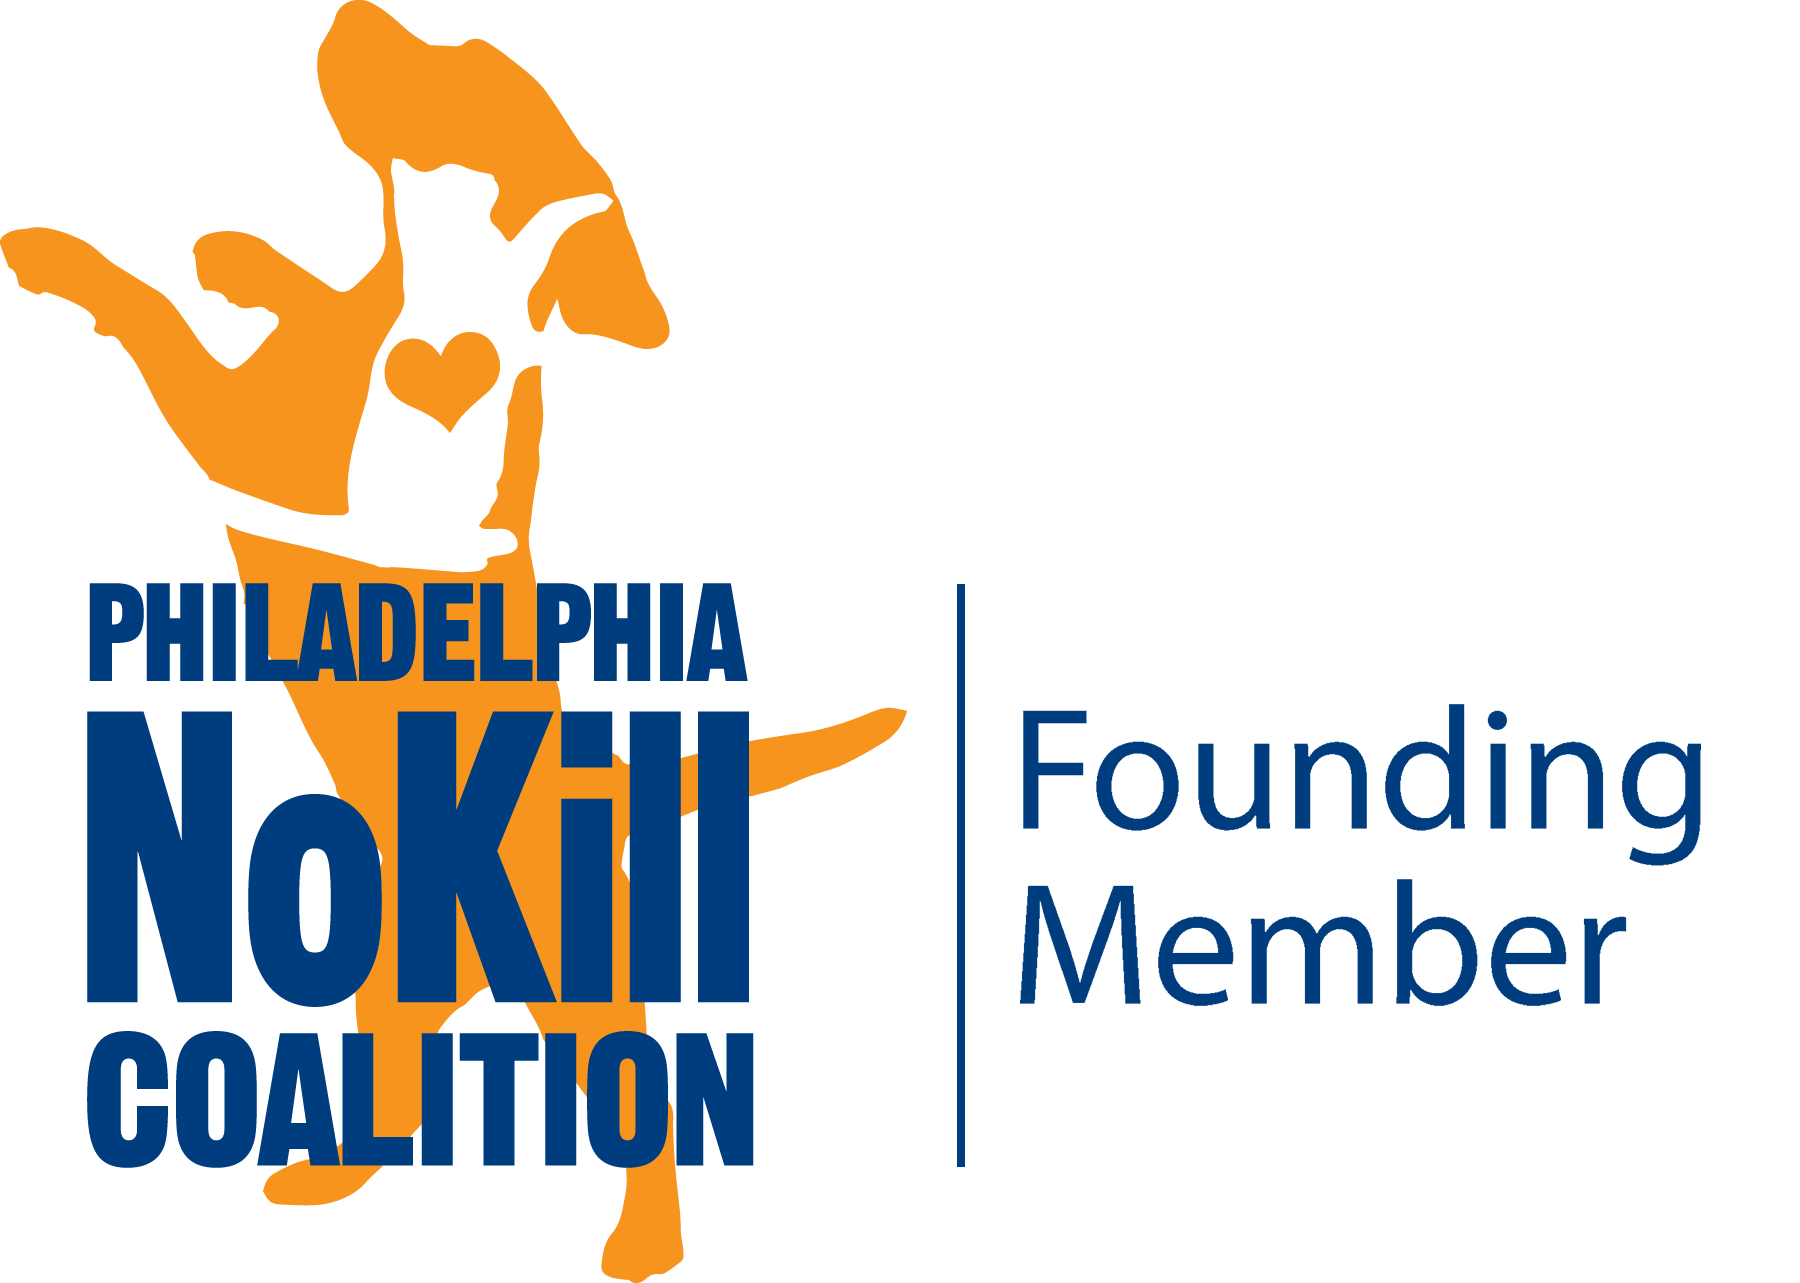 Philadelphia No-Kill Coalition